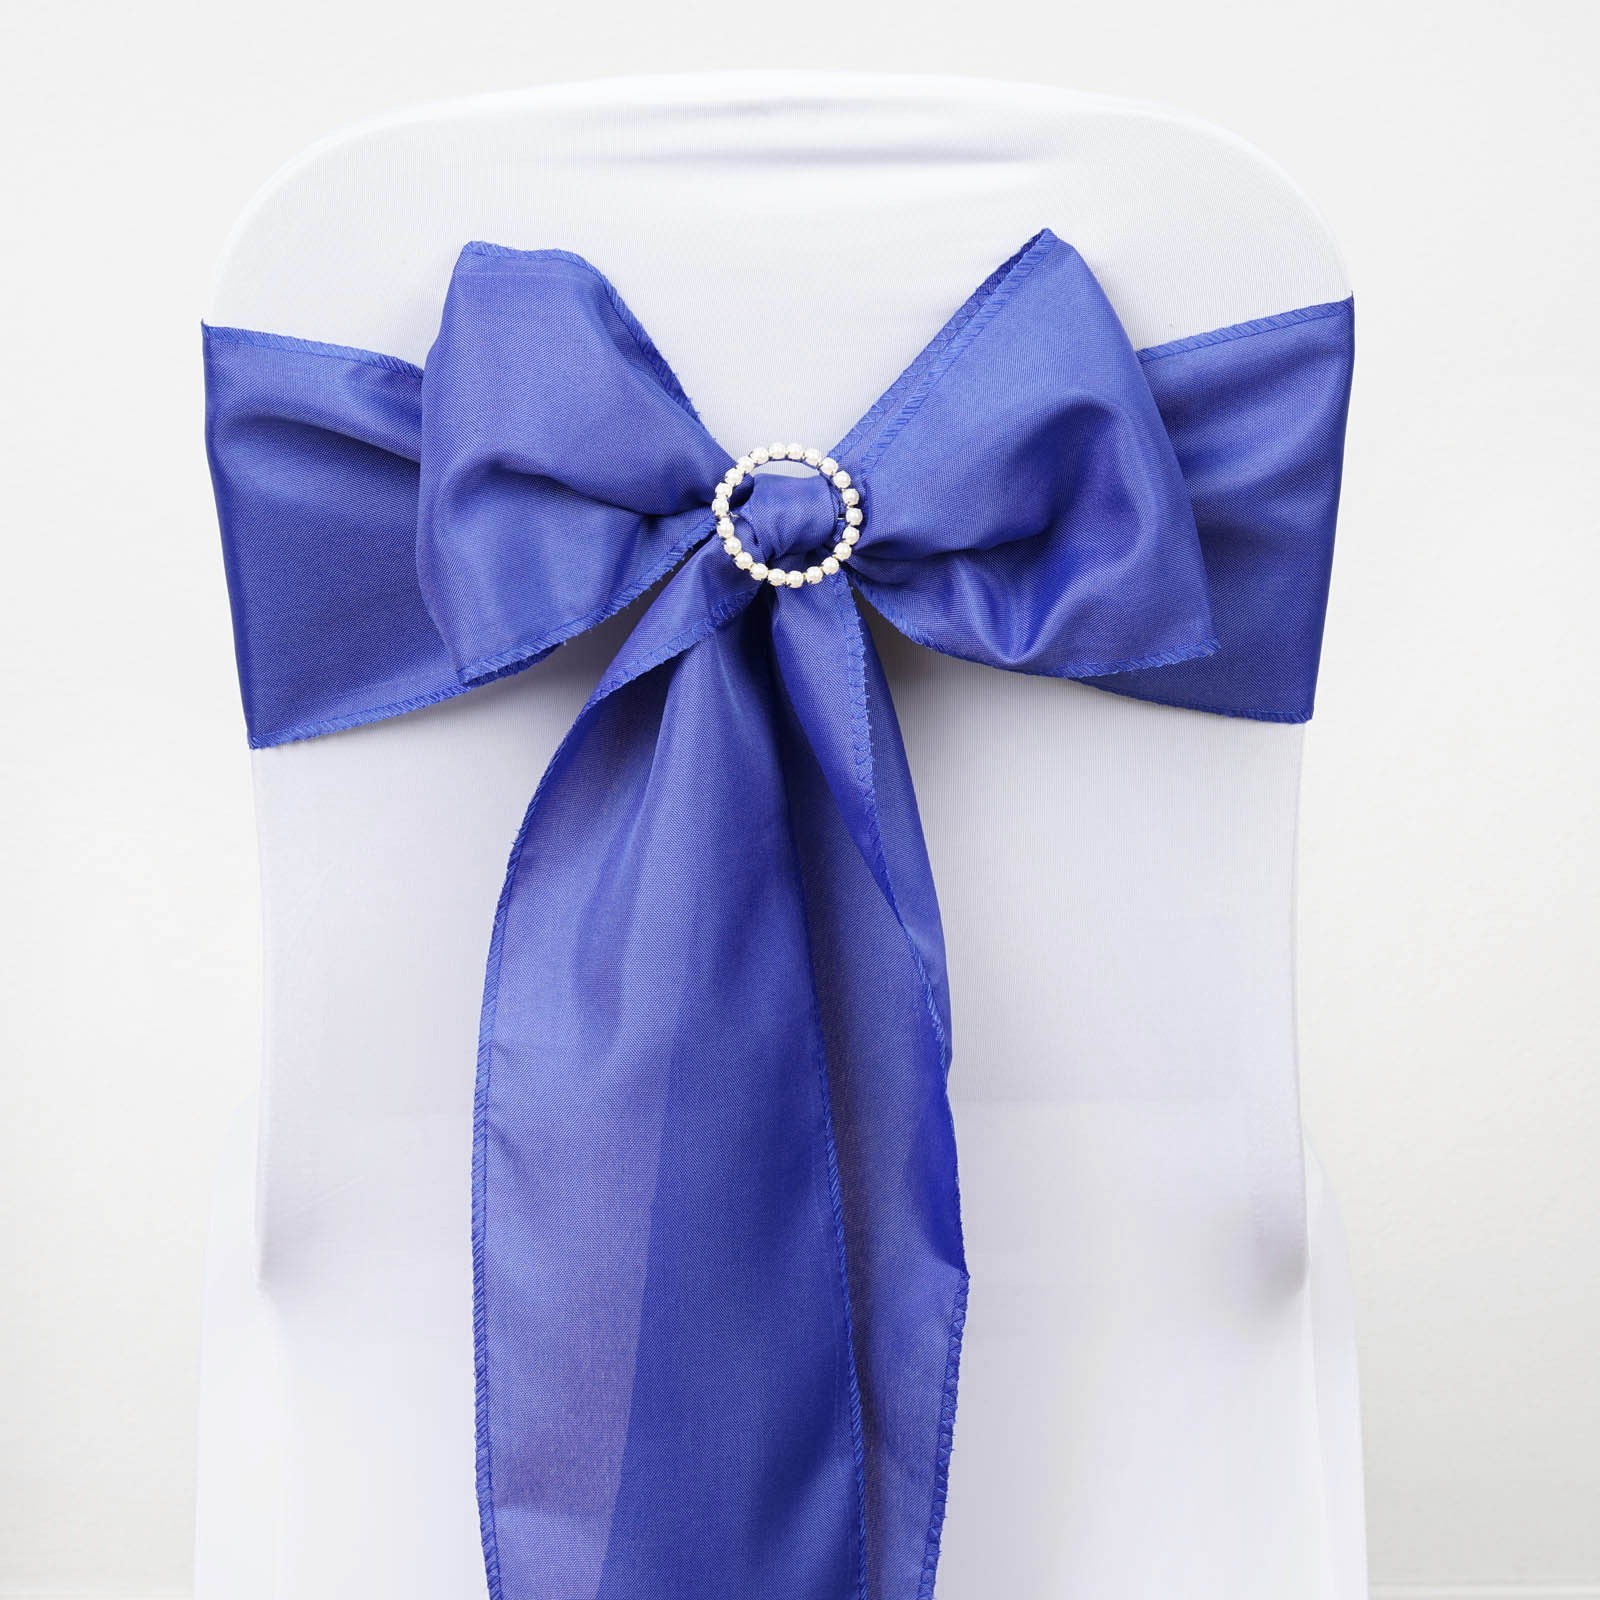 100 Polyester CHAIR SASHES Ties Bows Wedding Party